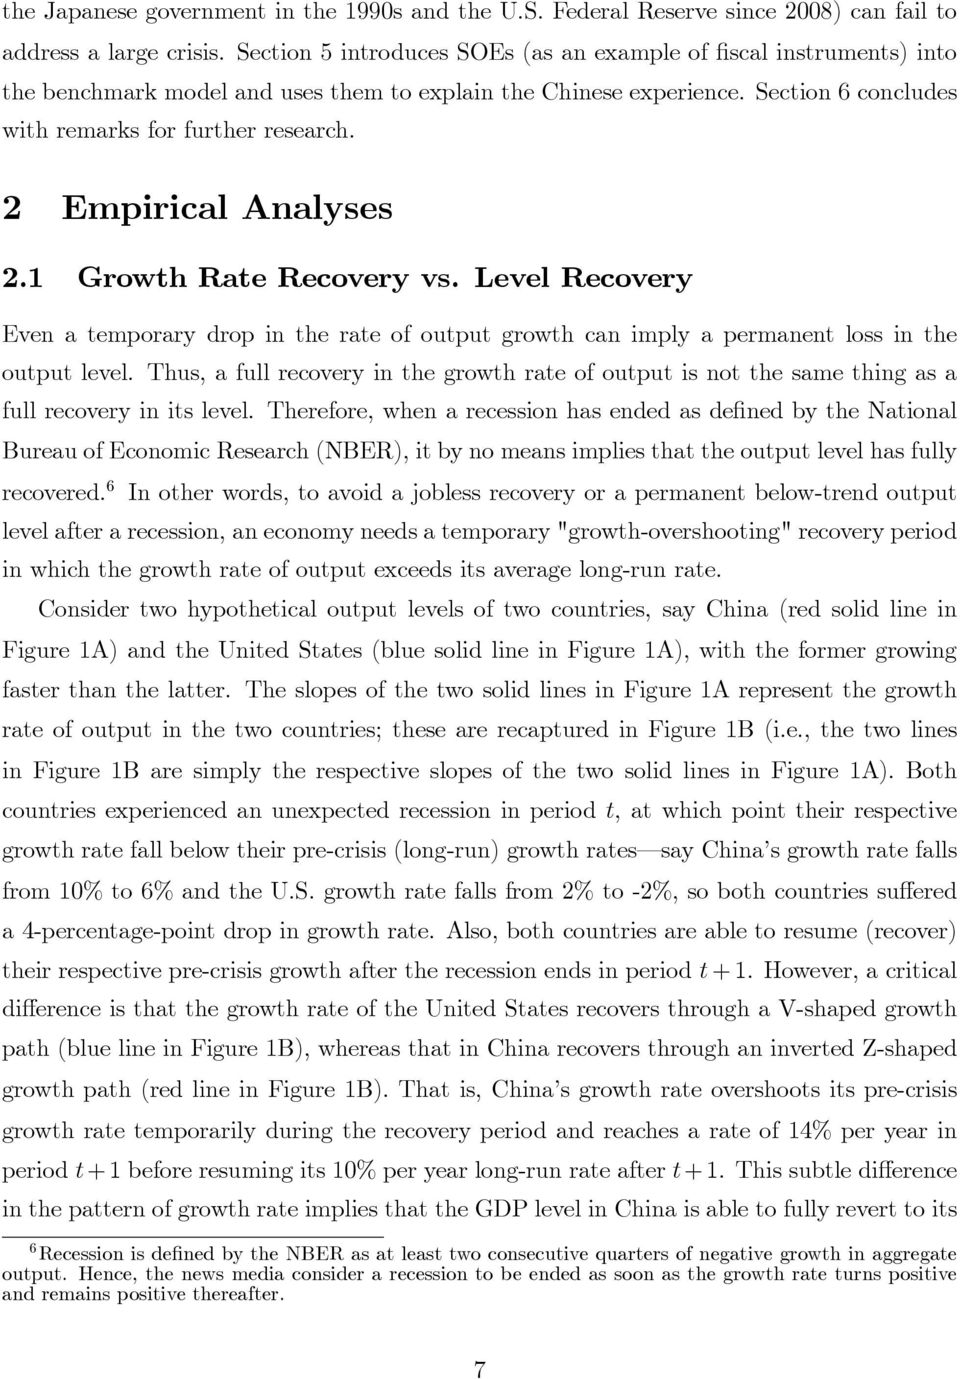 2 Empirical Analyses 2. Growh Rae Recovery vs. Level Recovery Even a emporary drop in he rae of oupu growh can imply a permanen loss in he oupu level.